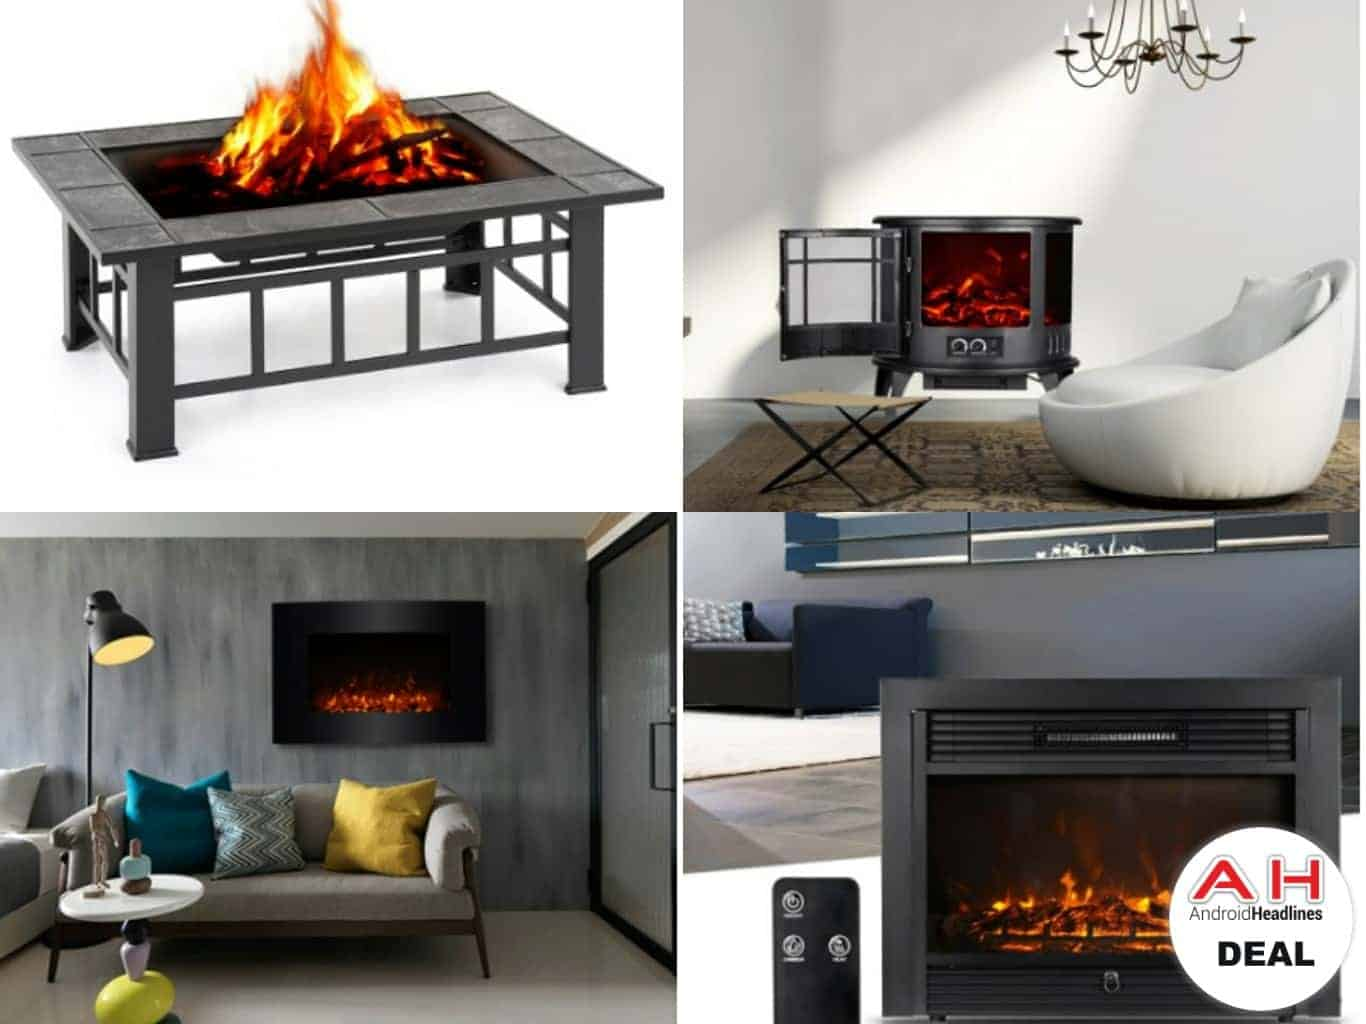 ideas to pertaining s sale alexpedan angie on list fireplaces fireplace com modern electric